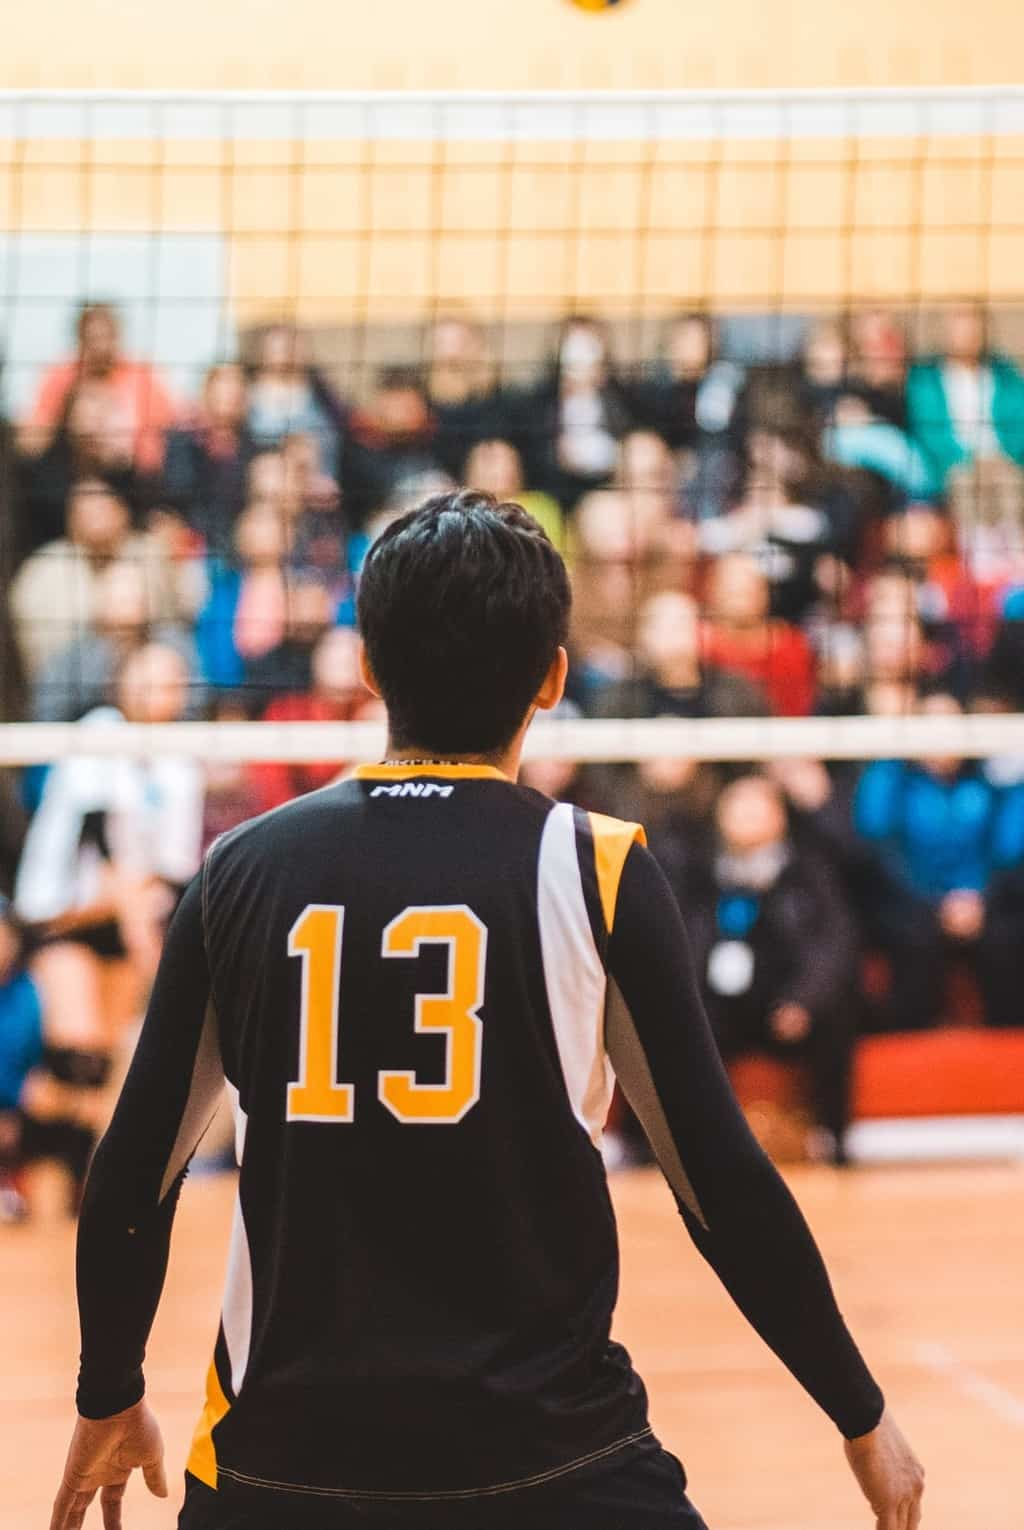 Volleyball player standing in court